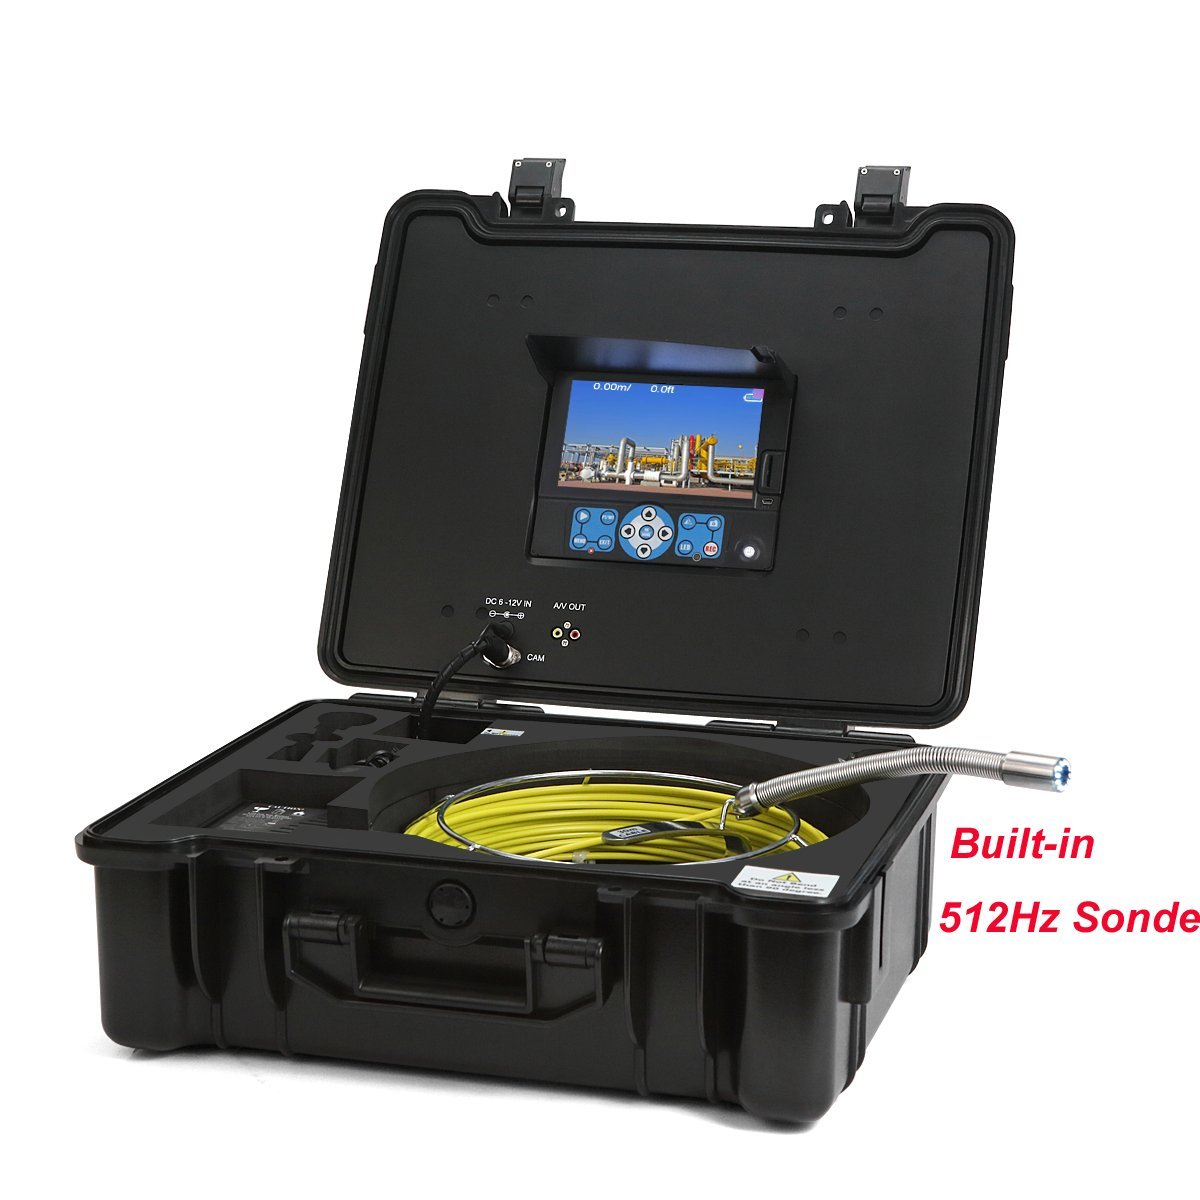 GooQee PIC003-L Drain Sewer Pipe Video Inspection System with 512Hz Sonde Sony CCD Color Camera length in 9.8 inch, 130ft Fiberglass Push Cable, 7 inch DVR, 8G SD Card (40m + Distance Counter + Sonde)